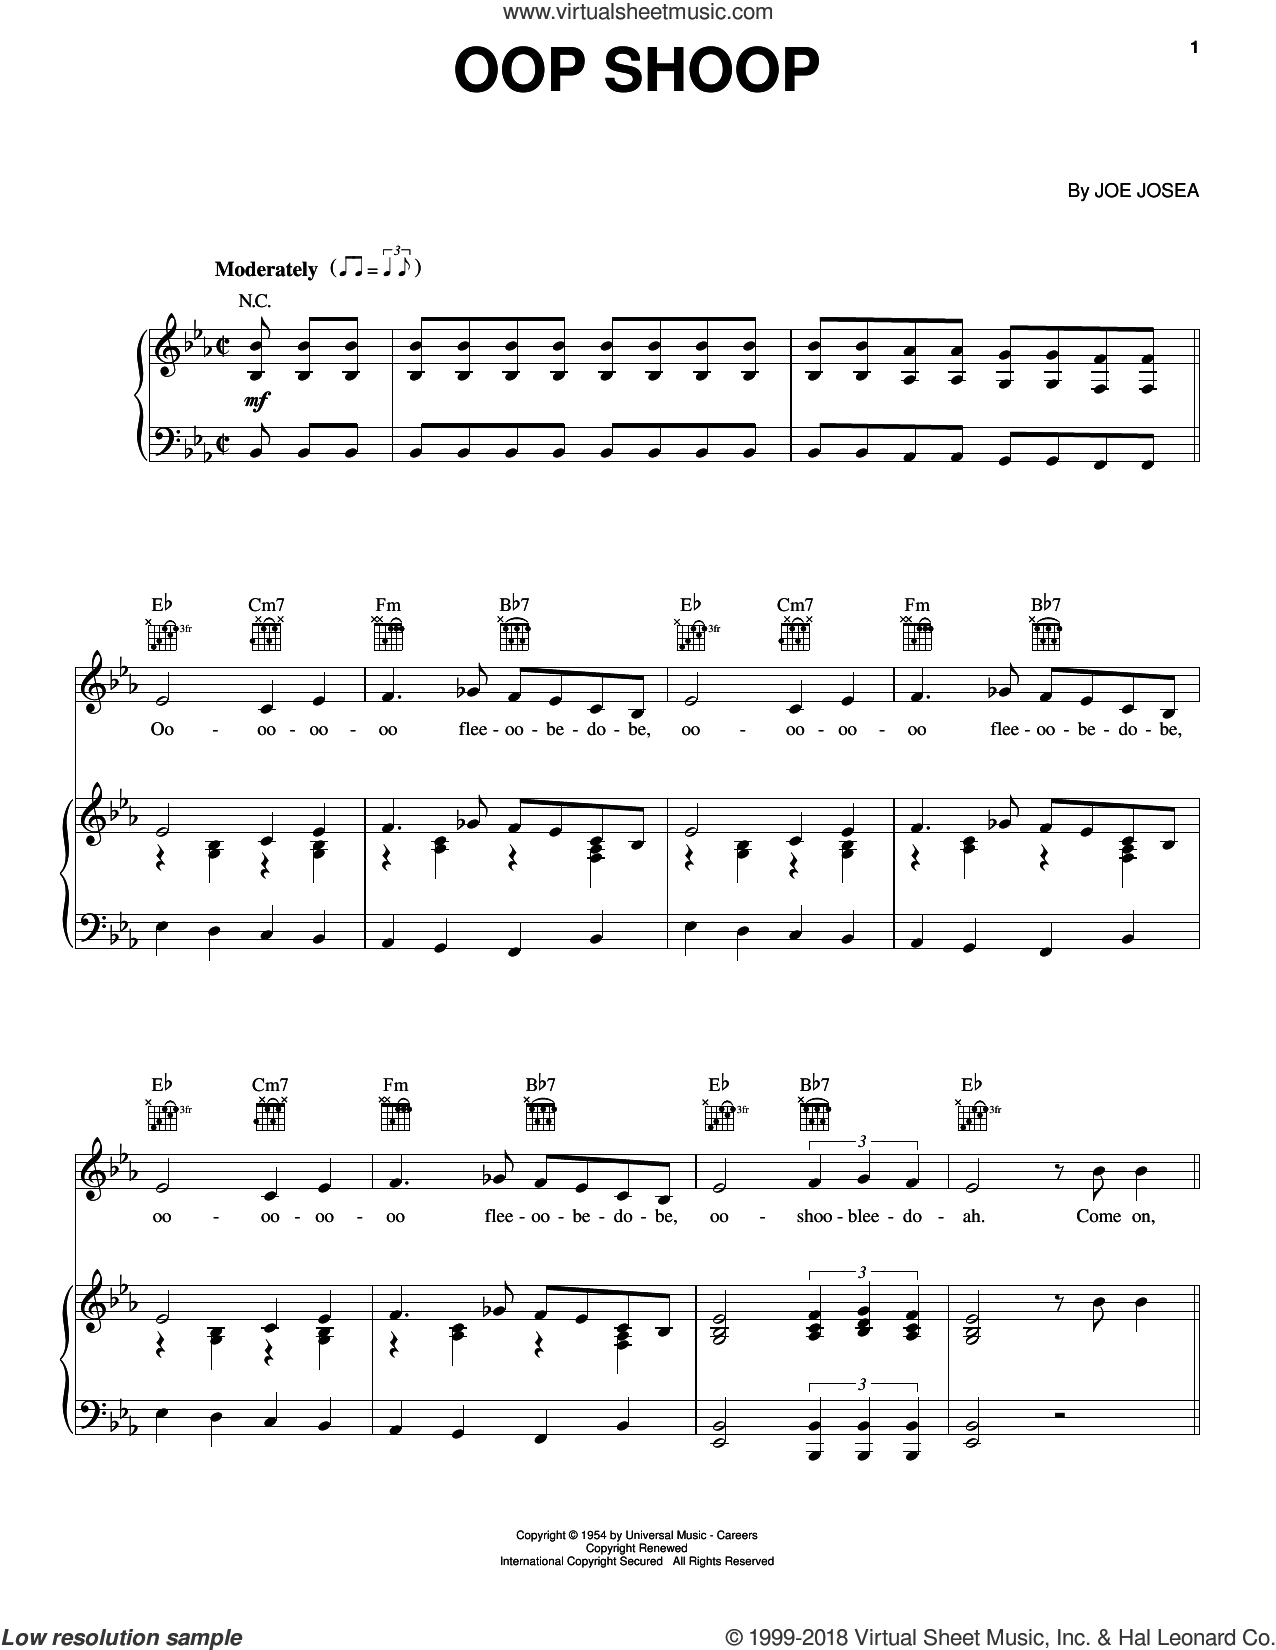 Oop Shoop sheet music for voice, piano or guitar by Shirley Gunter & The Queens, intermediate. Score Image Preview.